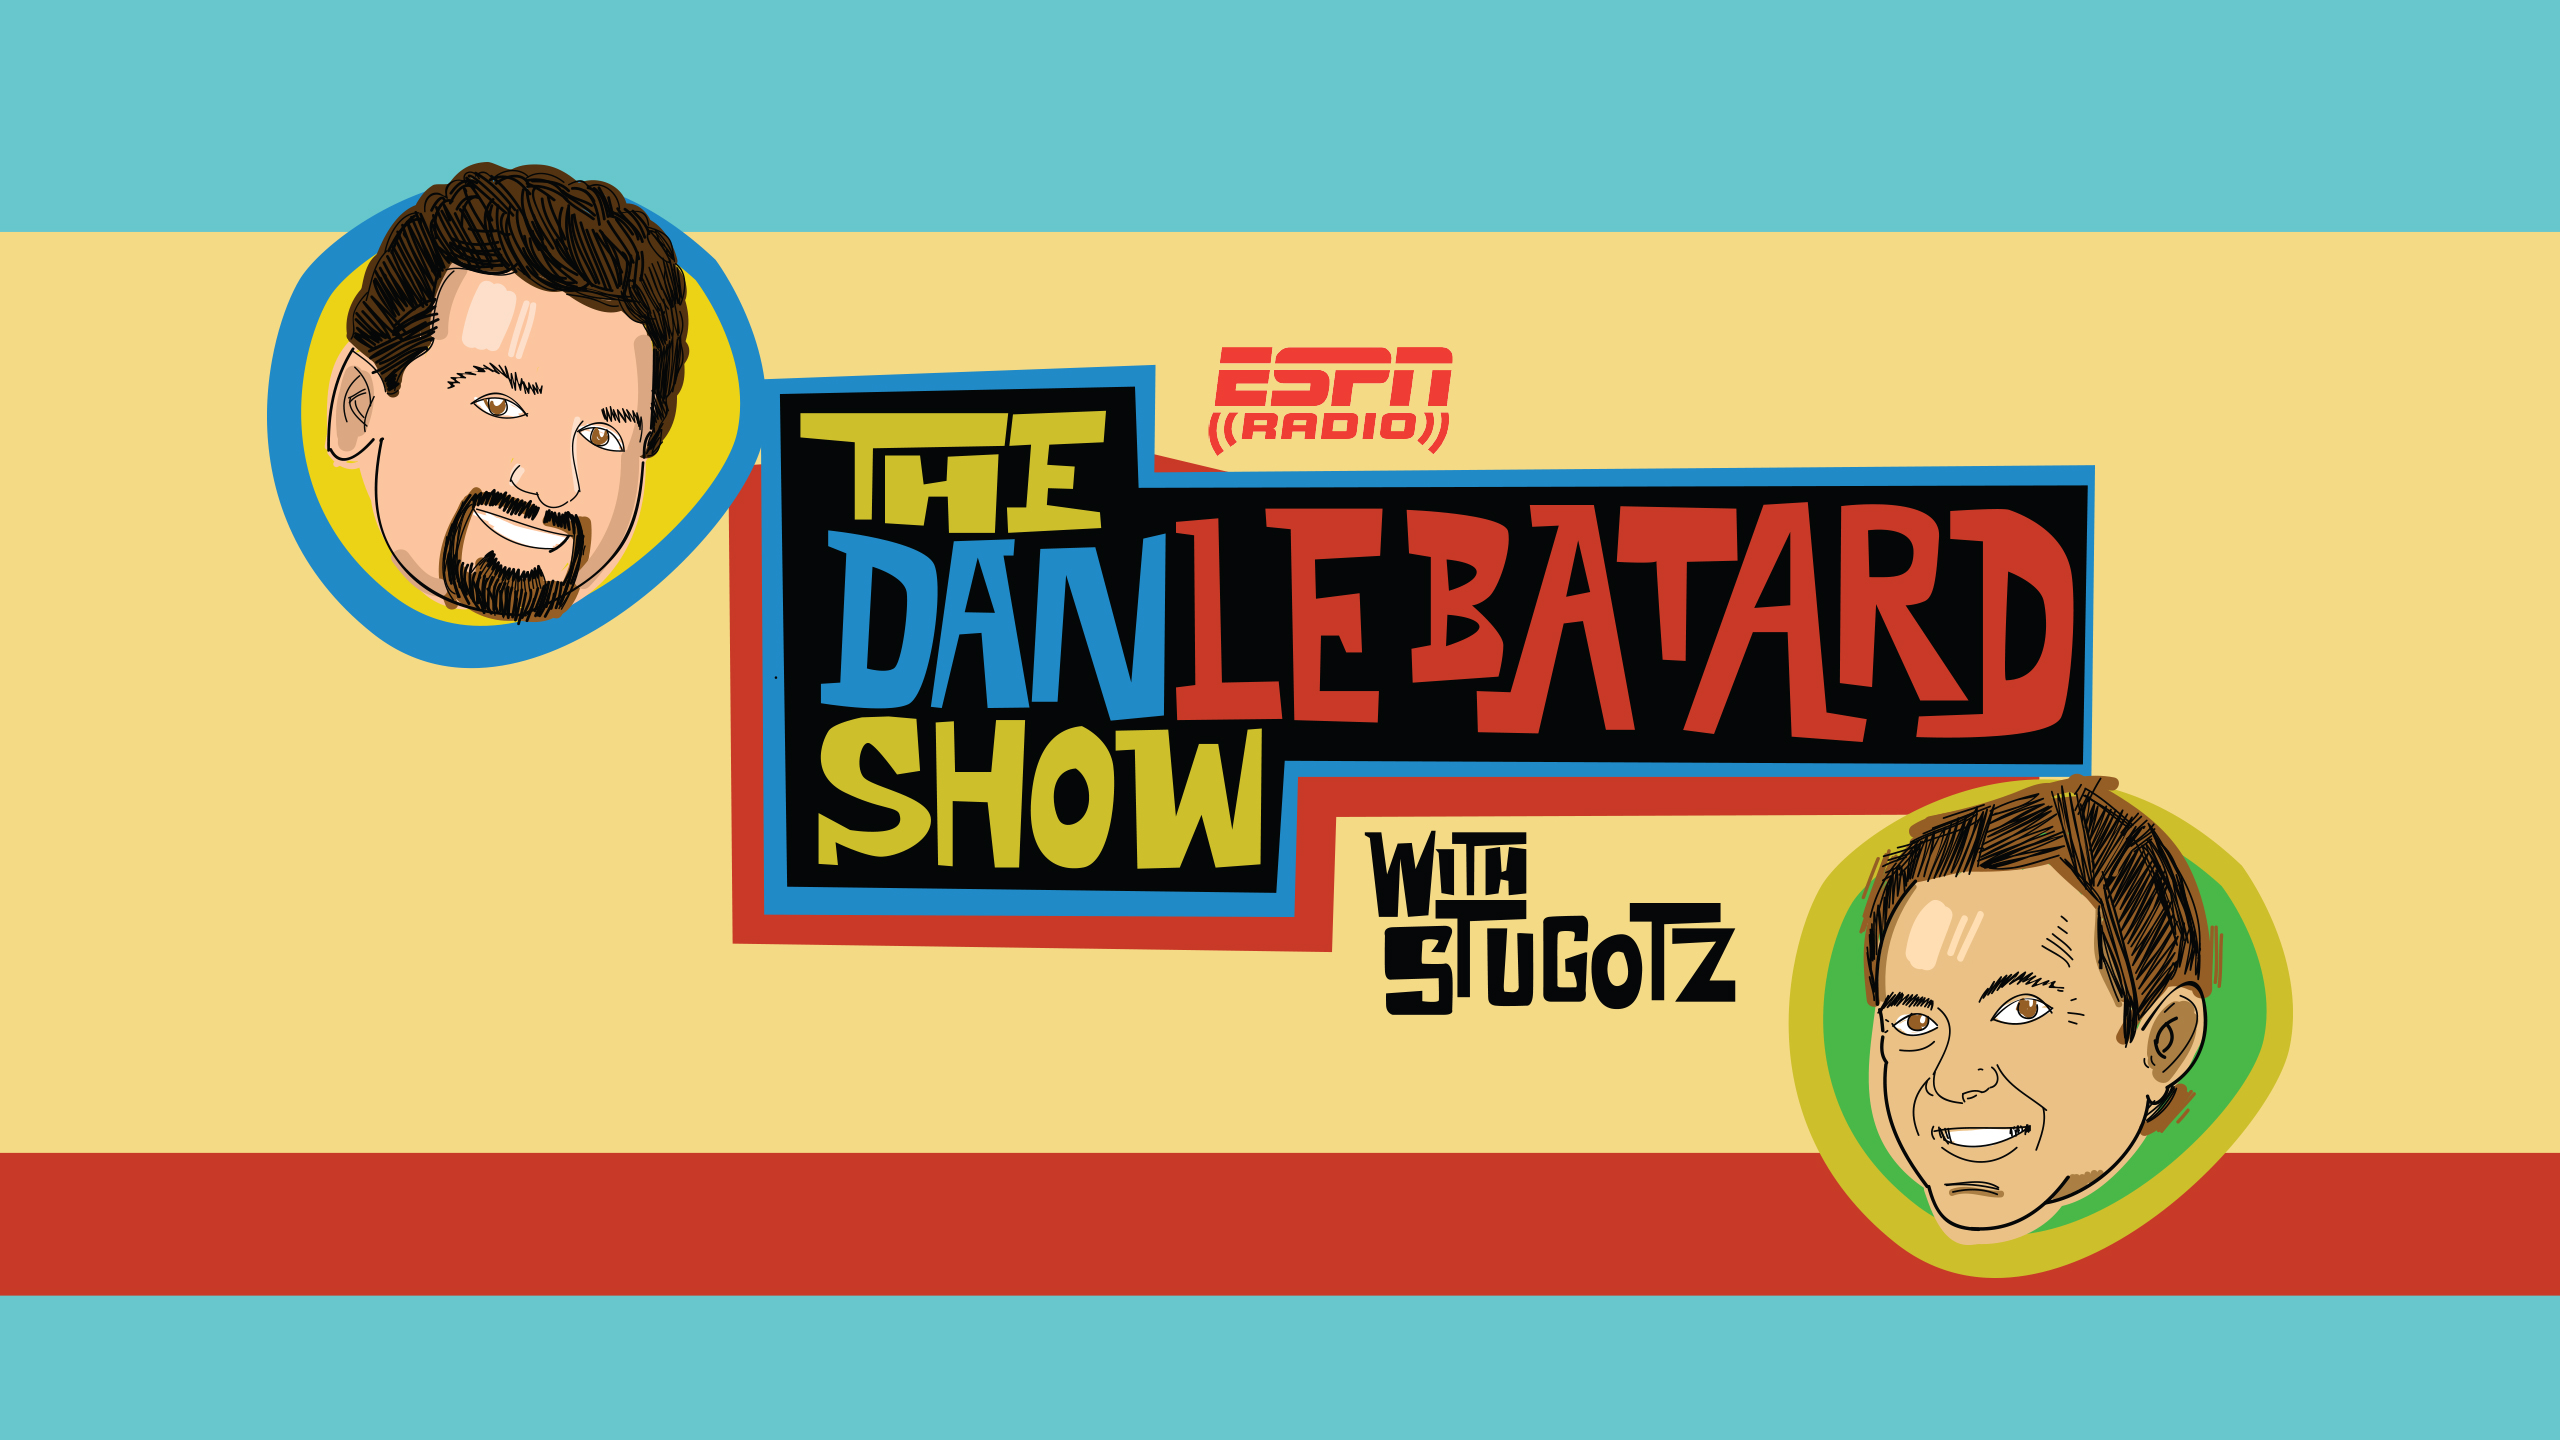 Tue, 10/23 - The Dan Le Batard Show with Stugotz Presented by Progressive